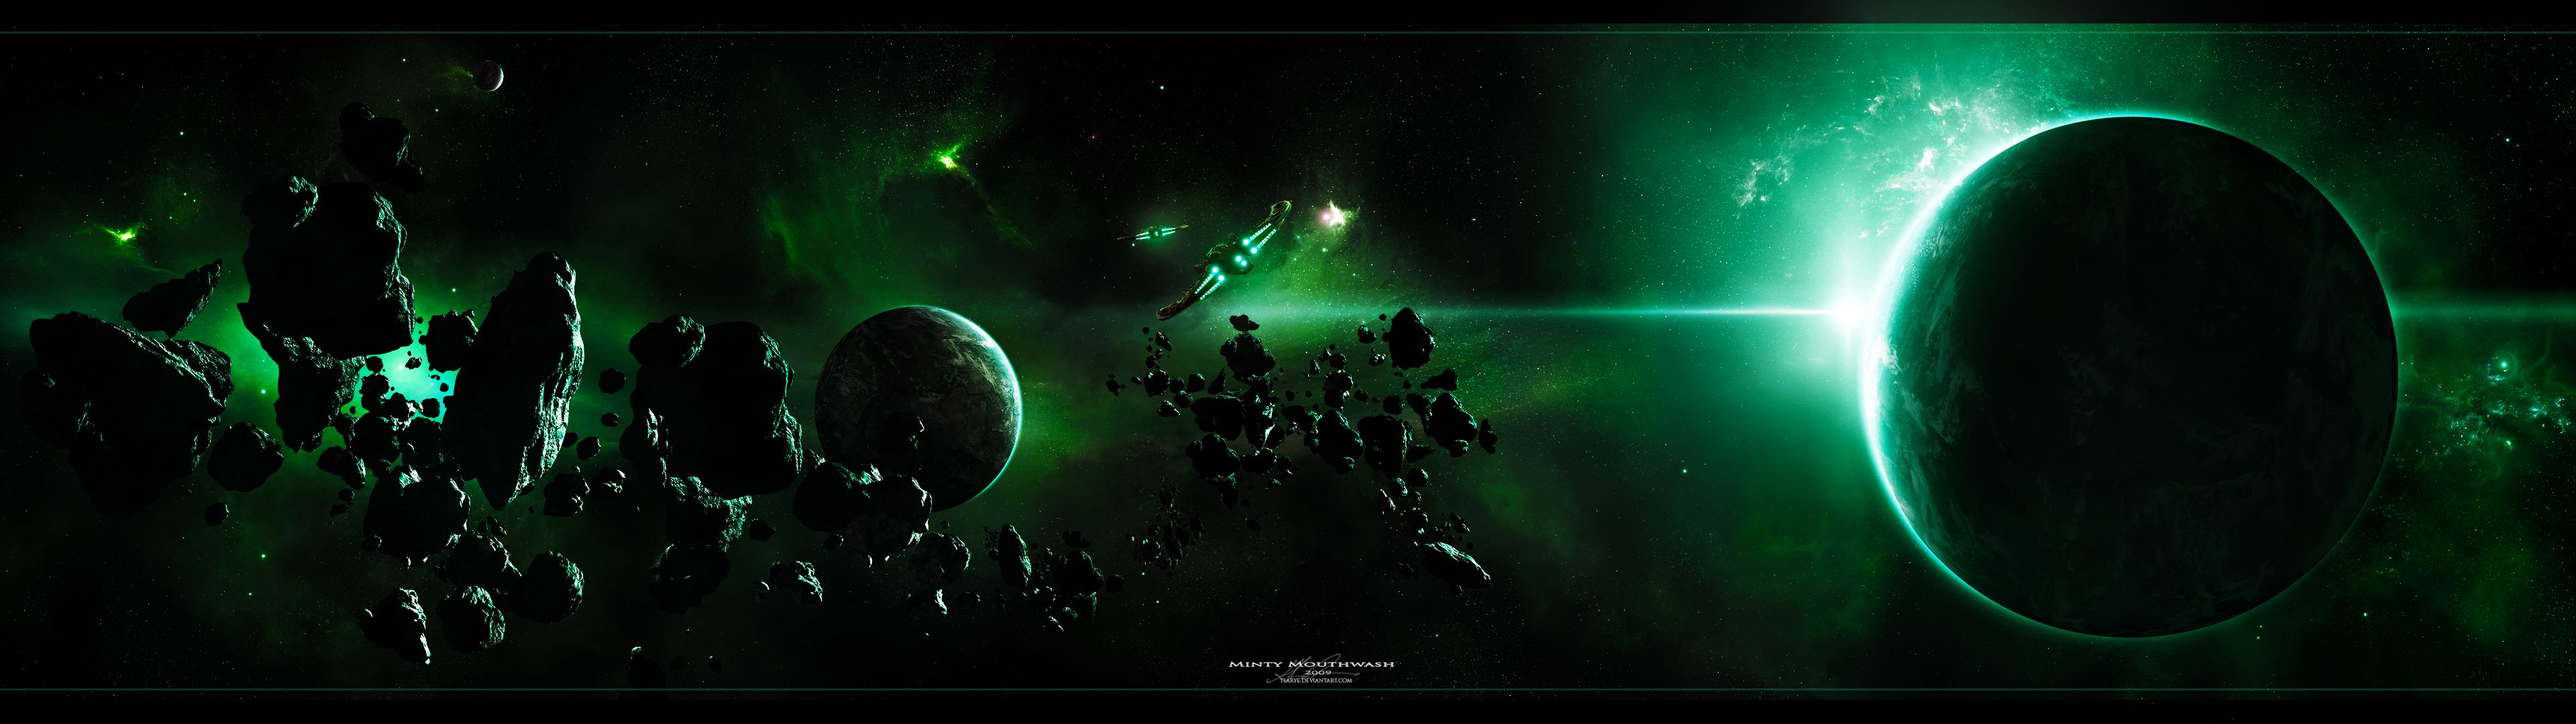 3840x1080 outer space, planets, dual screen :: Wallpapers